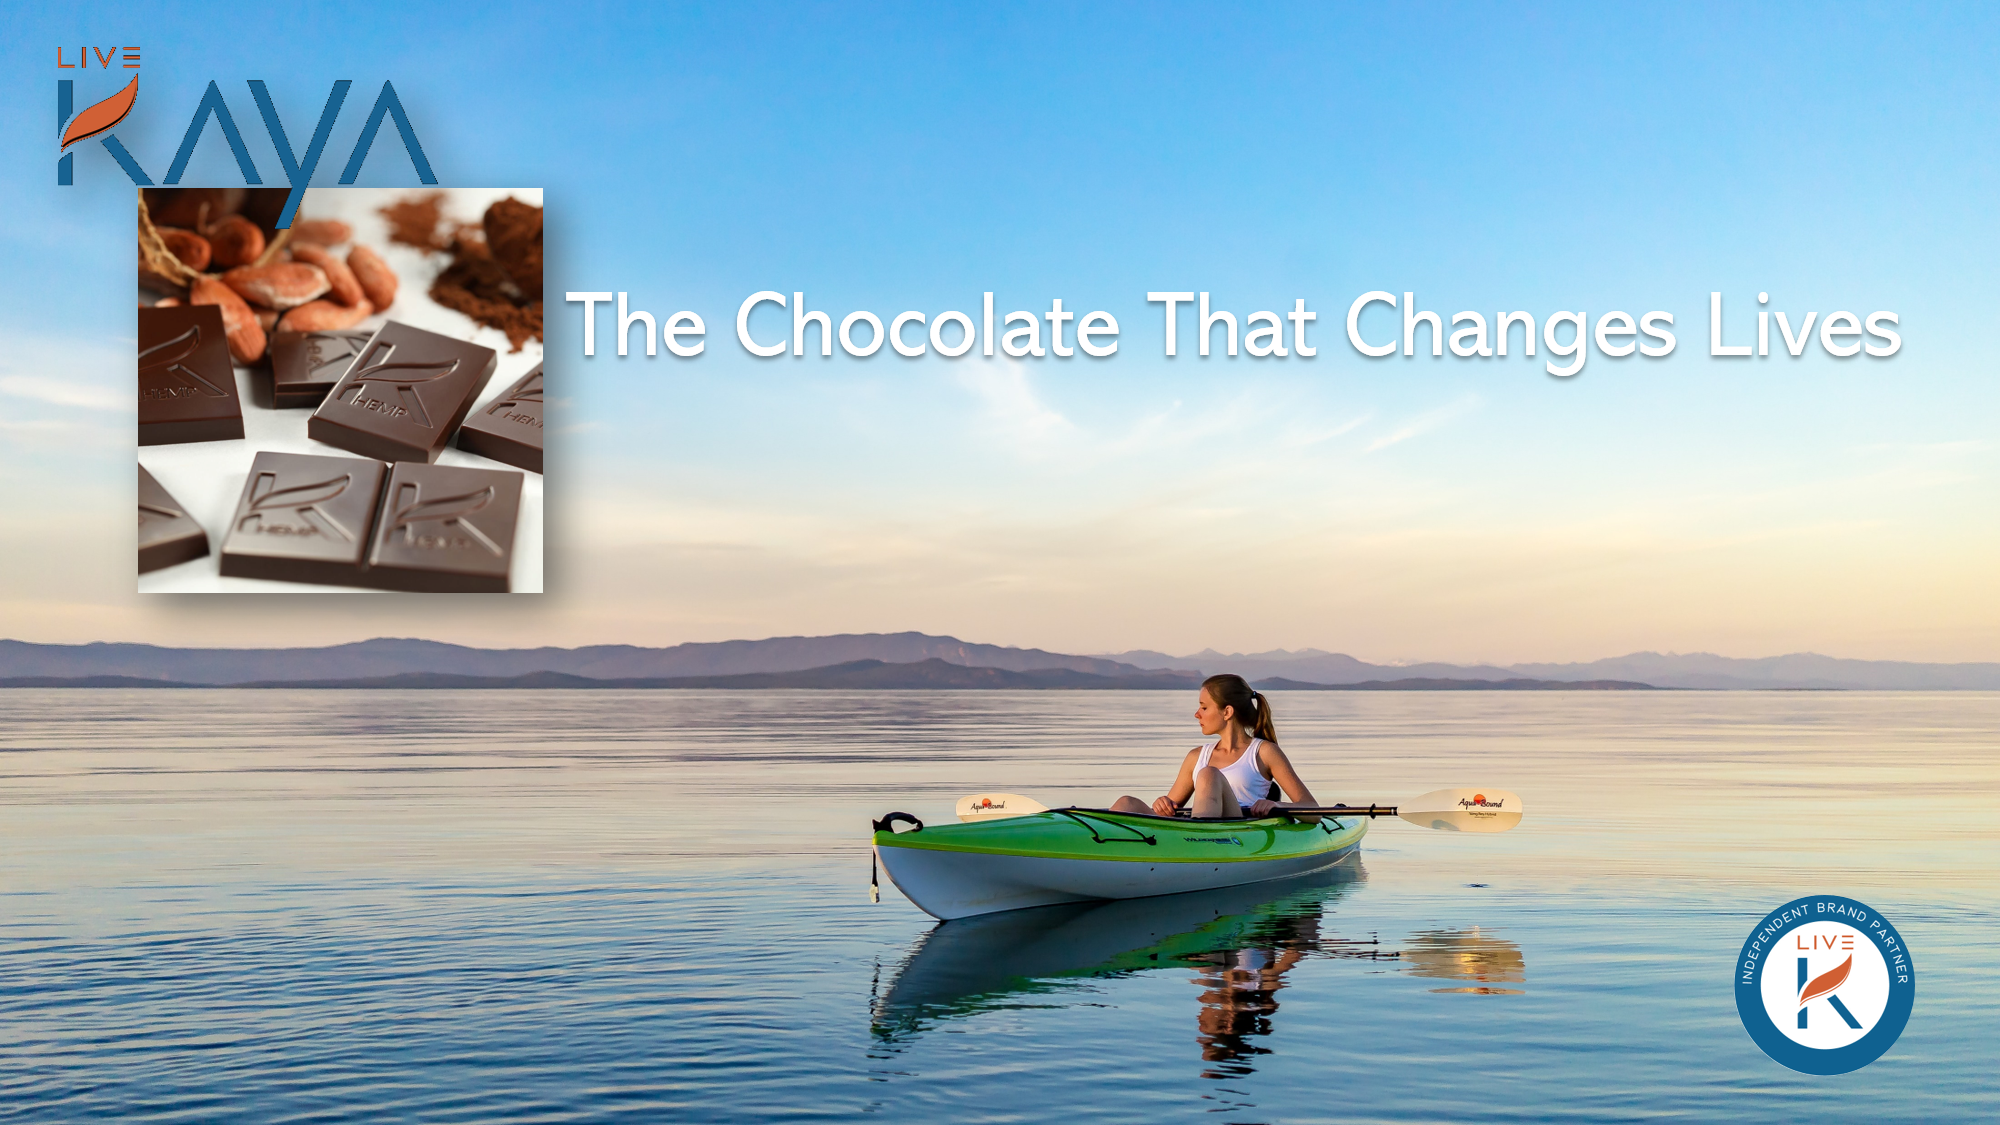 Live Kaya the chocolate that changes lives